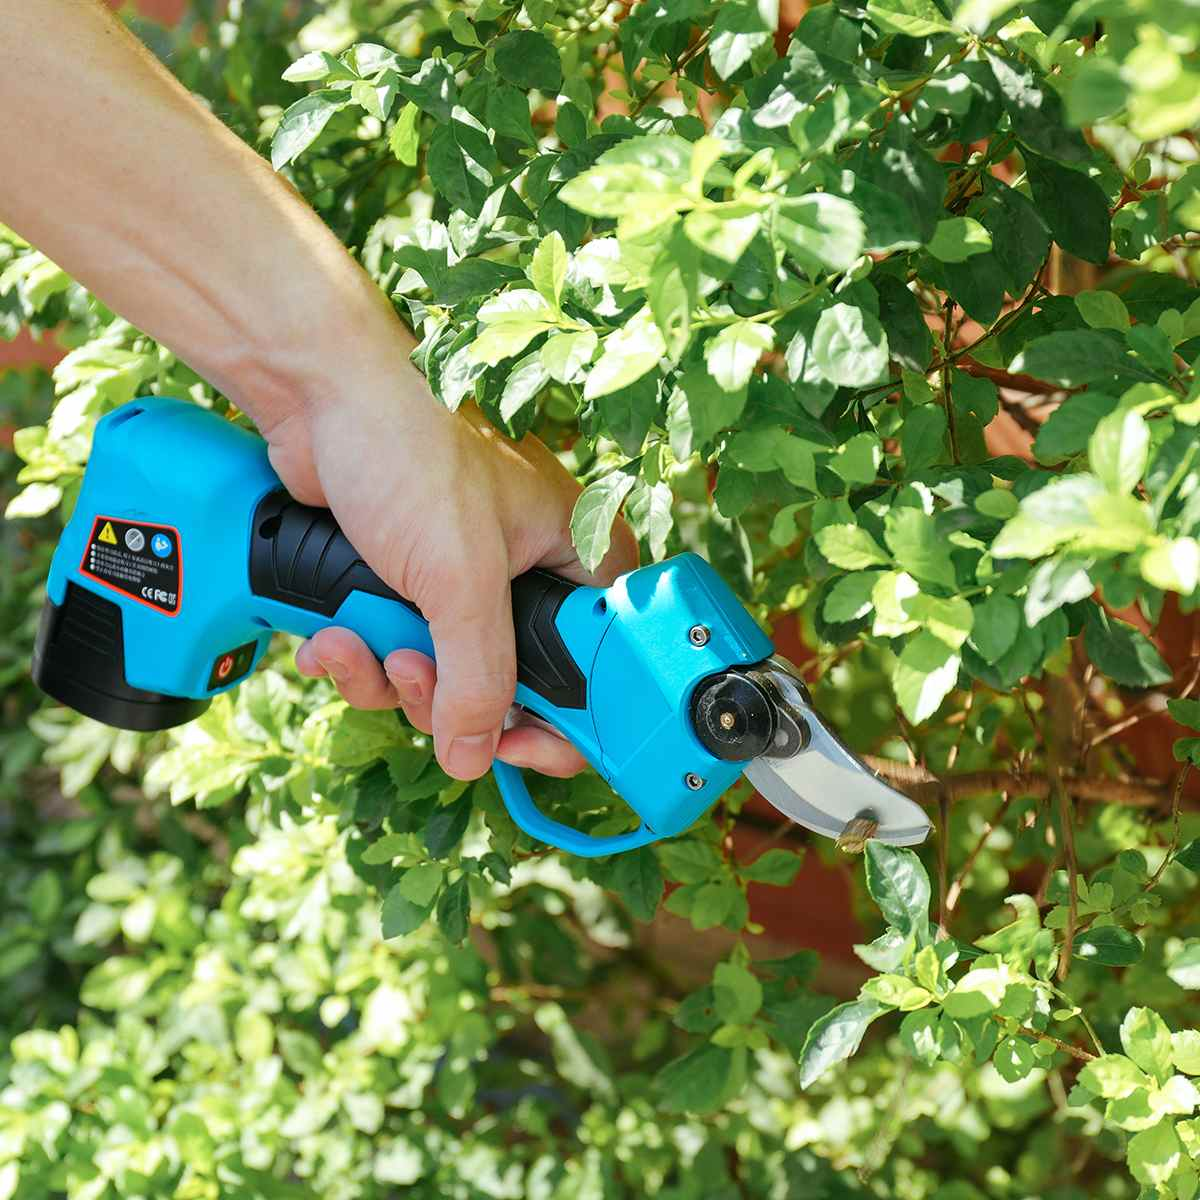 16.8V Li ion Battery Rechargeable Electric Cordless Secateur Branch Cutter Pruning Shears for Sharp Cutting Tool to Fruit Garden